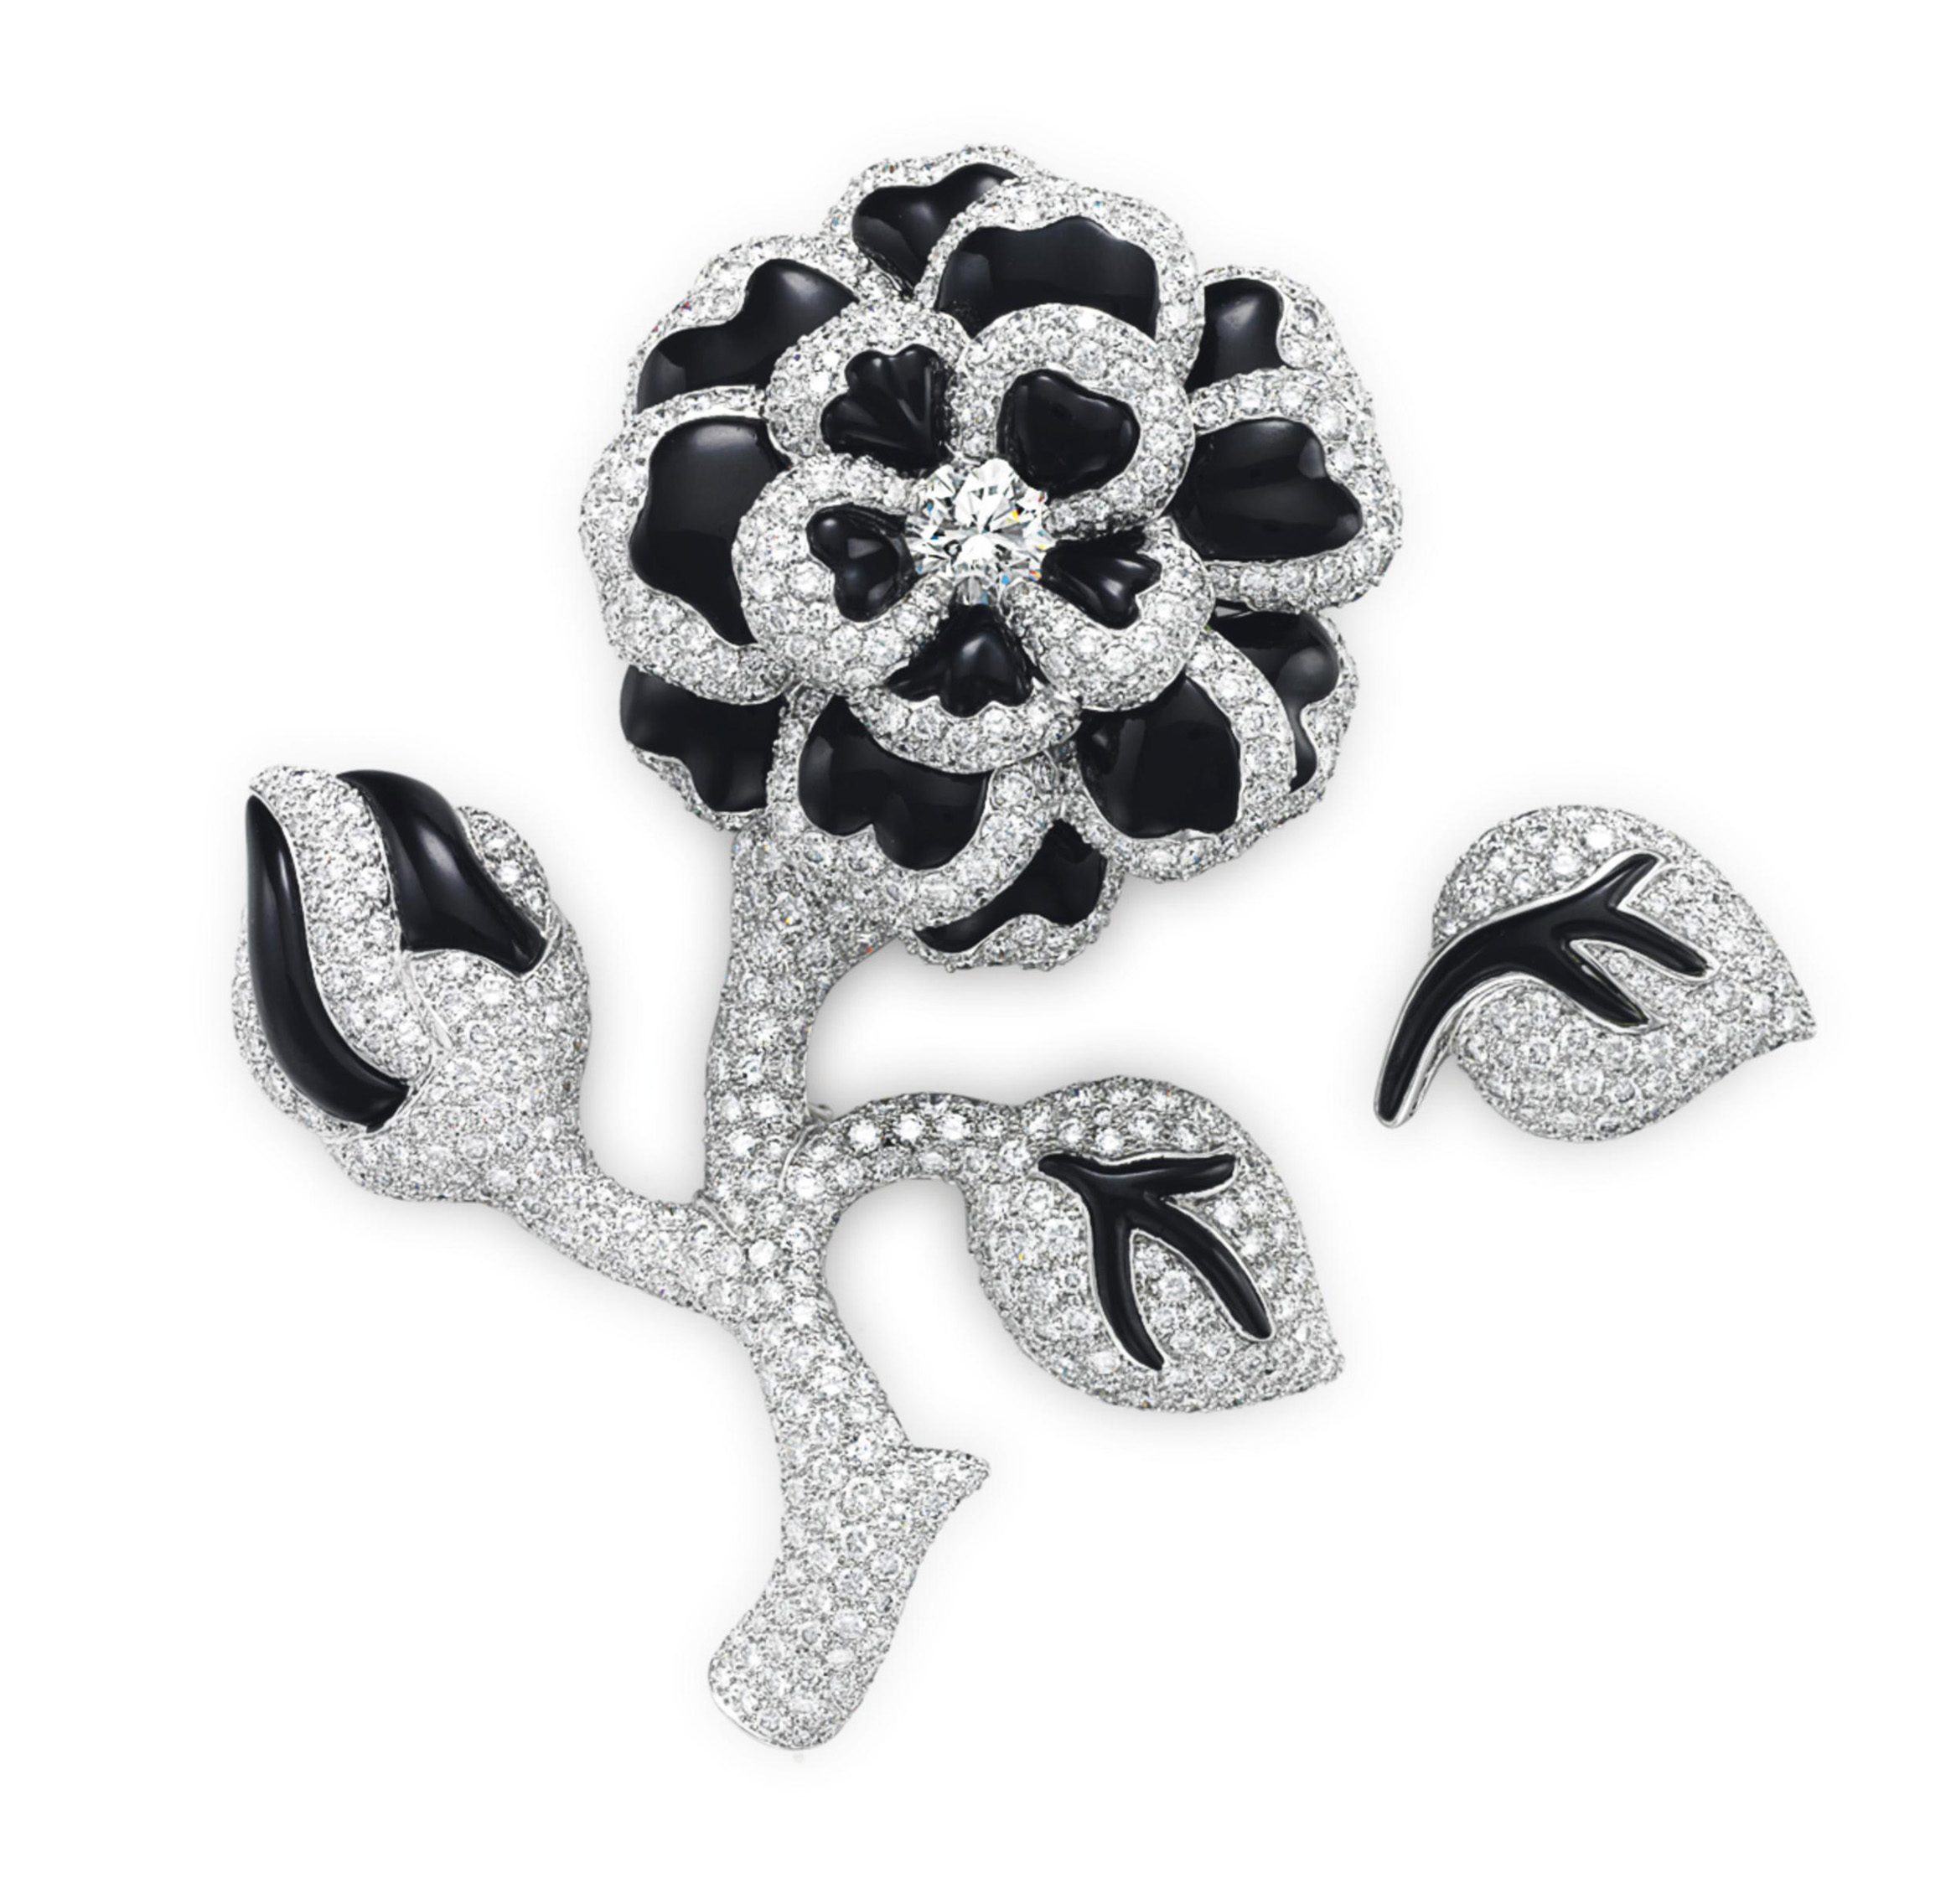 camelia brooch crystal earrings strass camellia set pin chanel